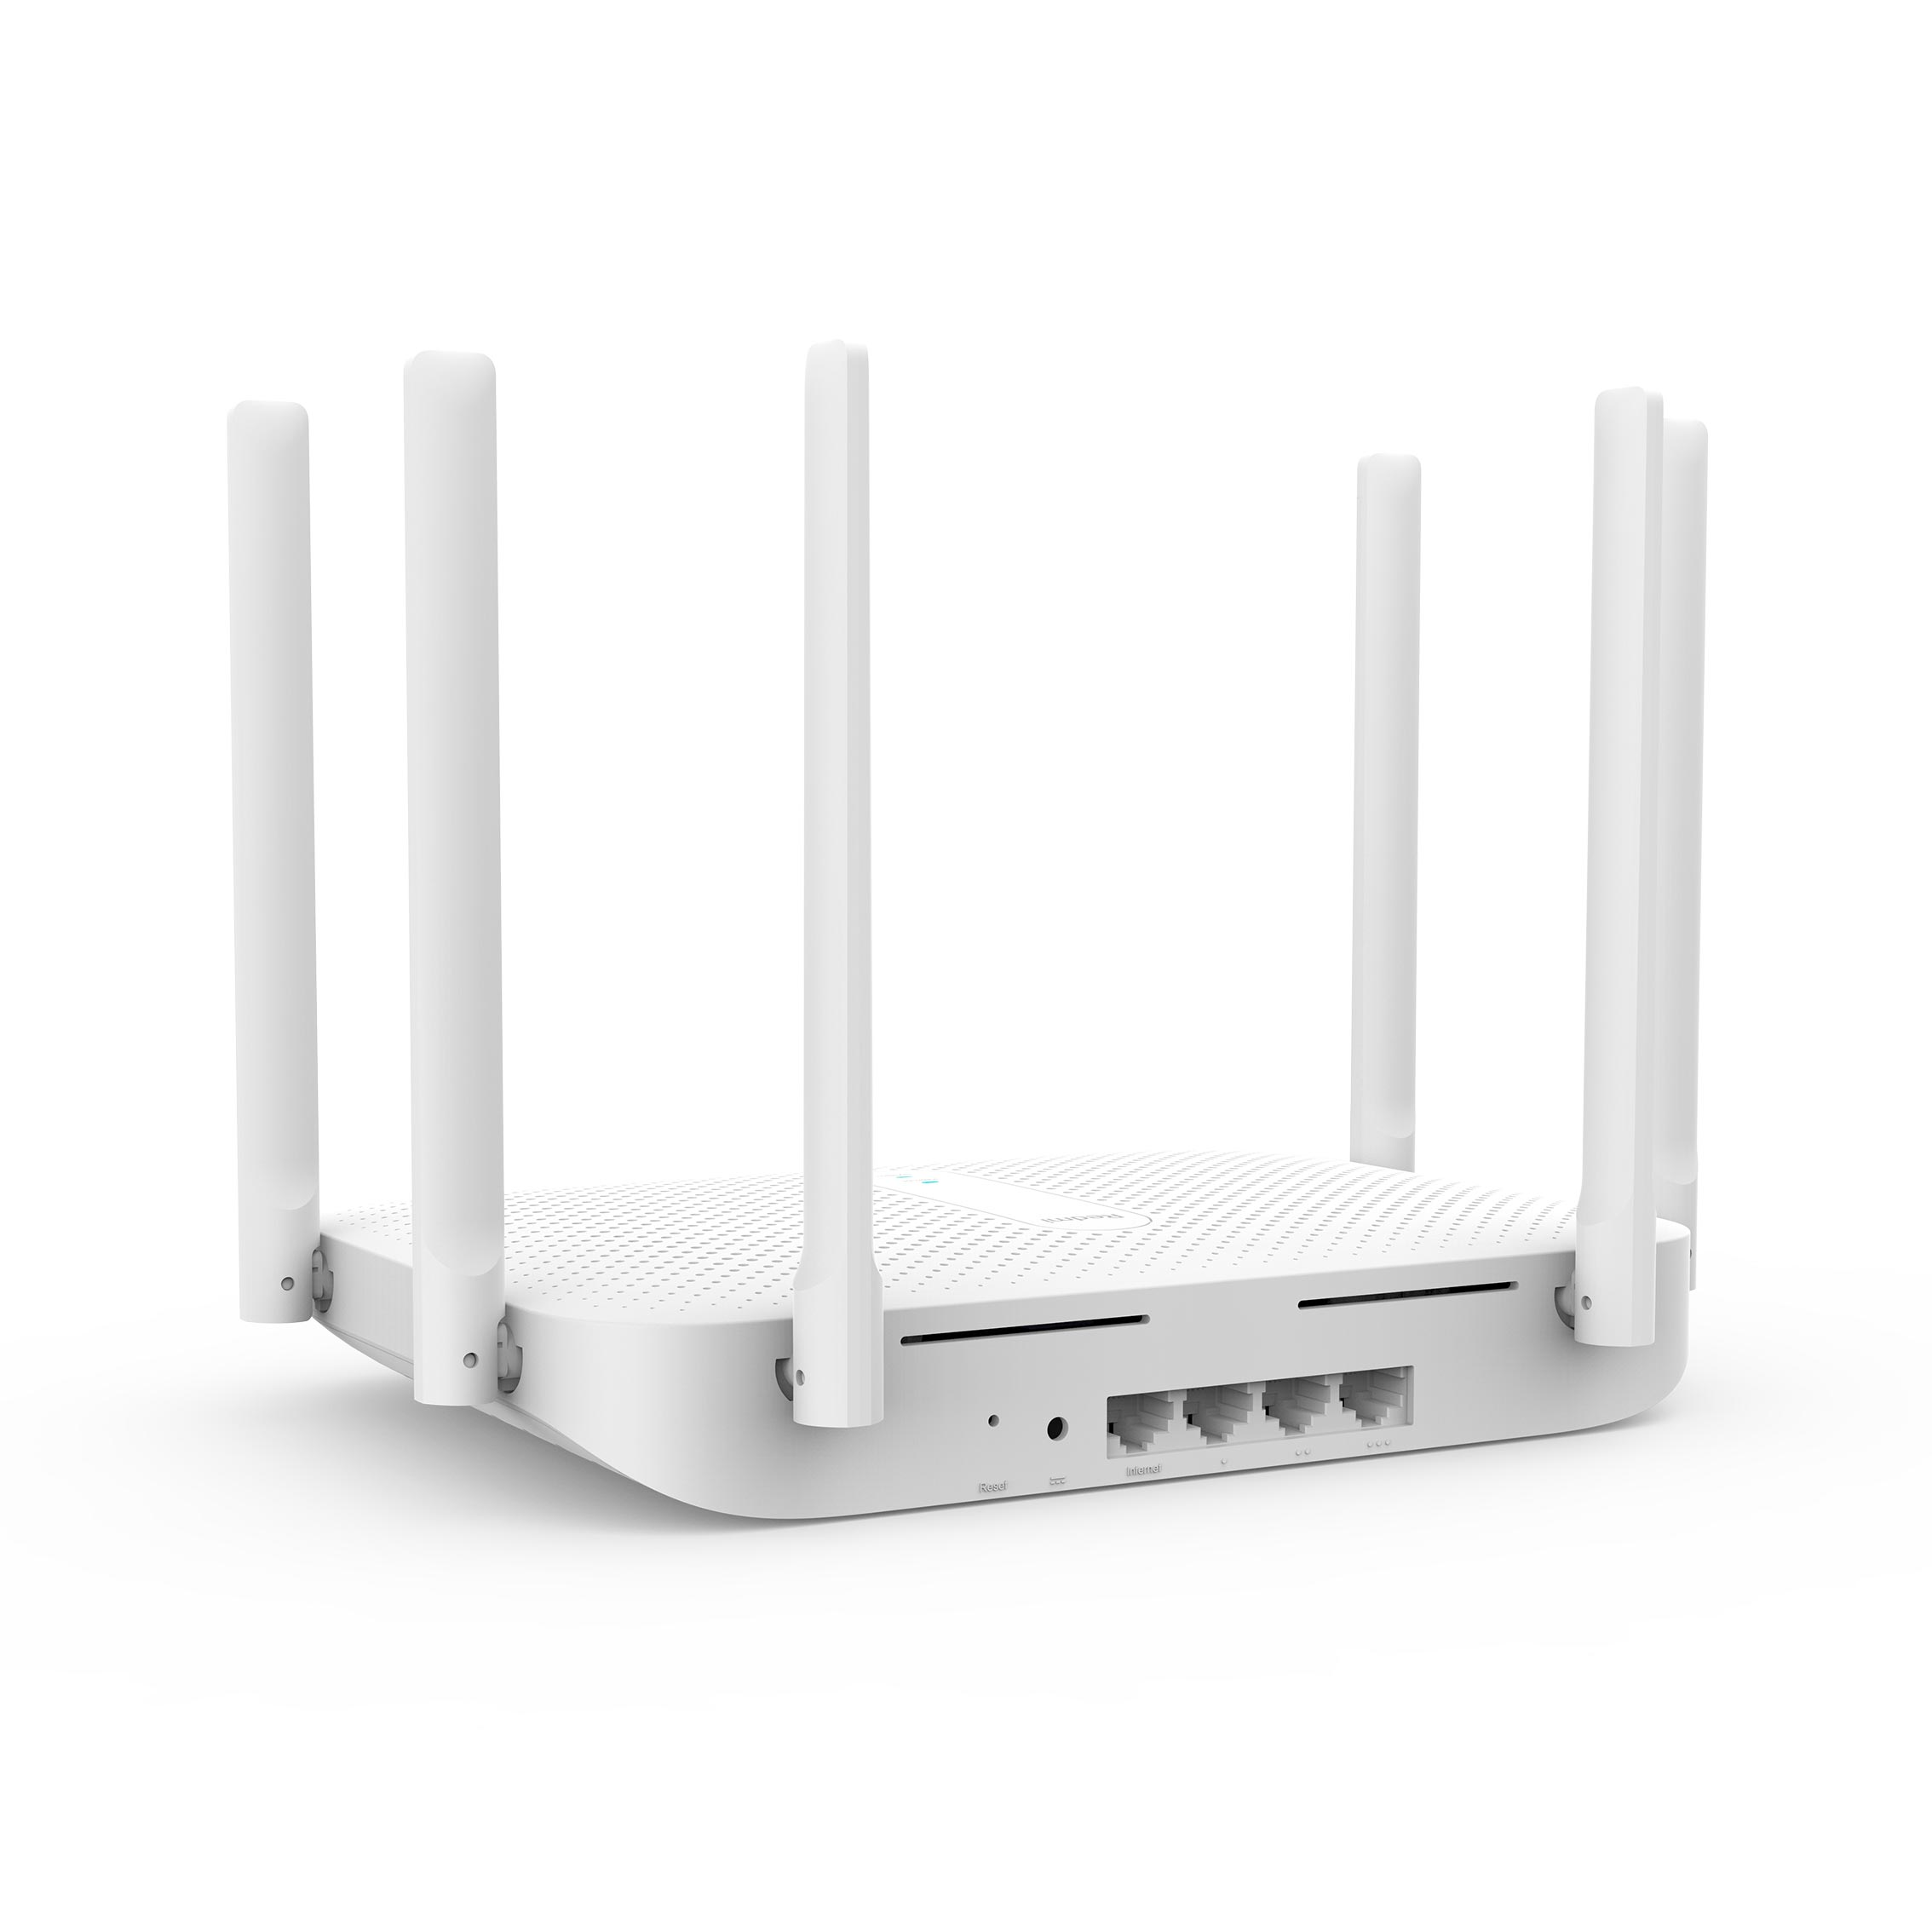 Xiaomi Redmi AC2100 Wireless Router with Gigabit and Dual-Band Repeater along with 6 High Gain Antennas and Wider Coverage 2